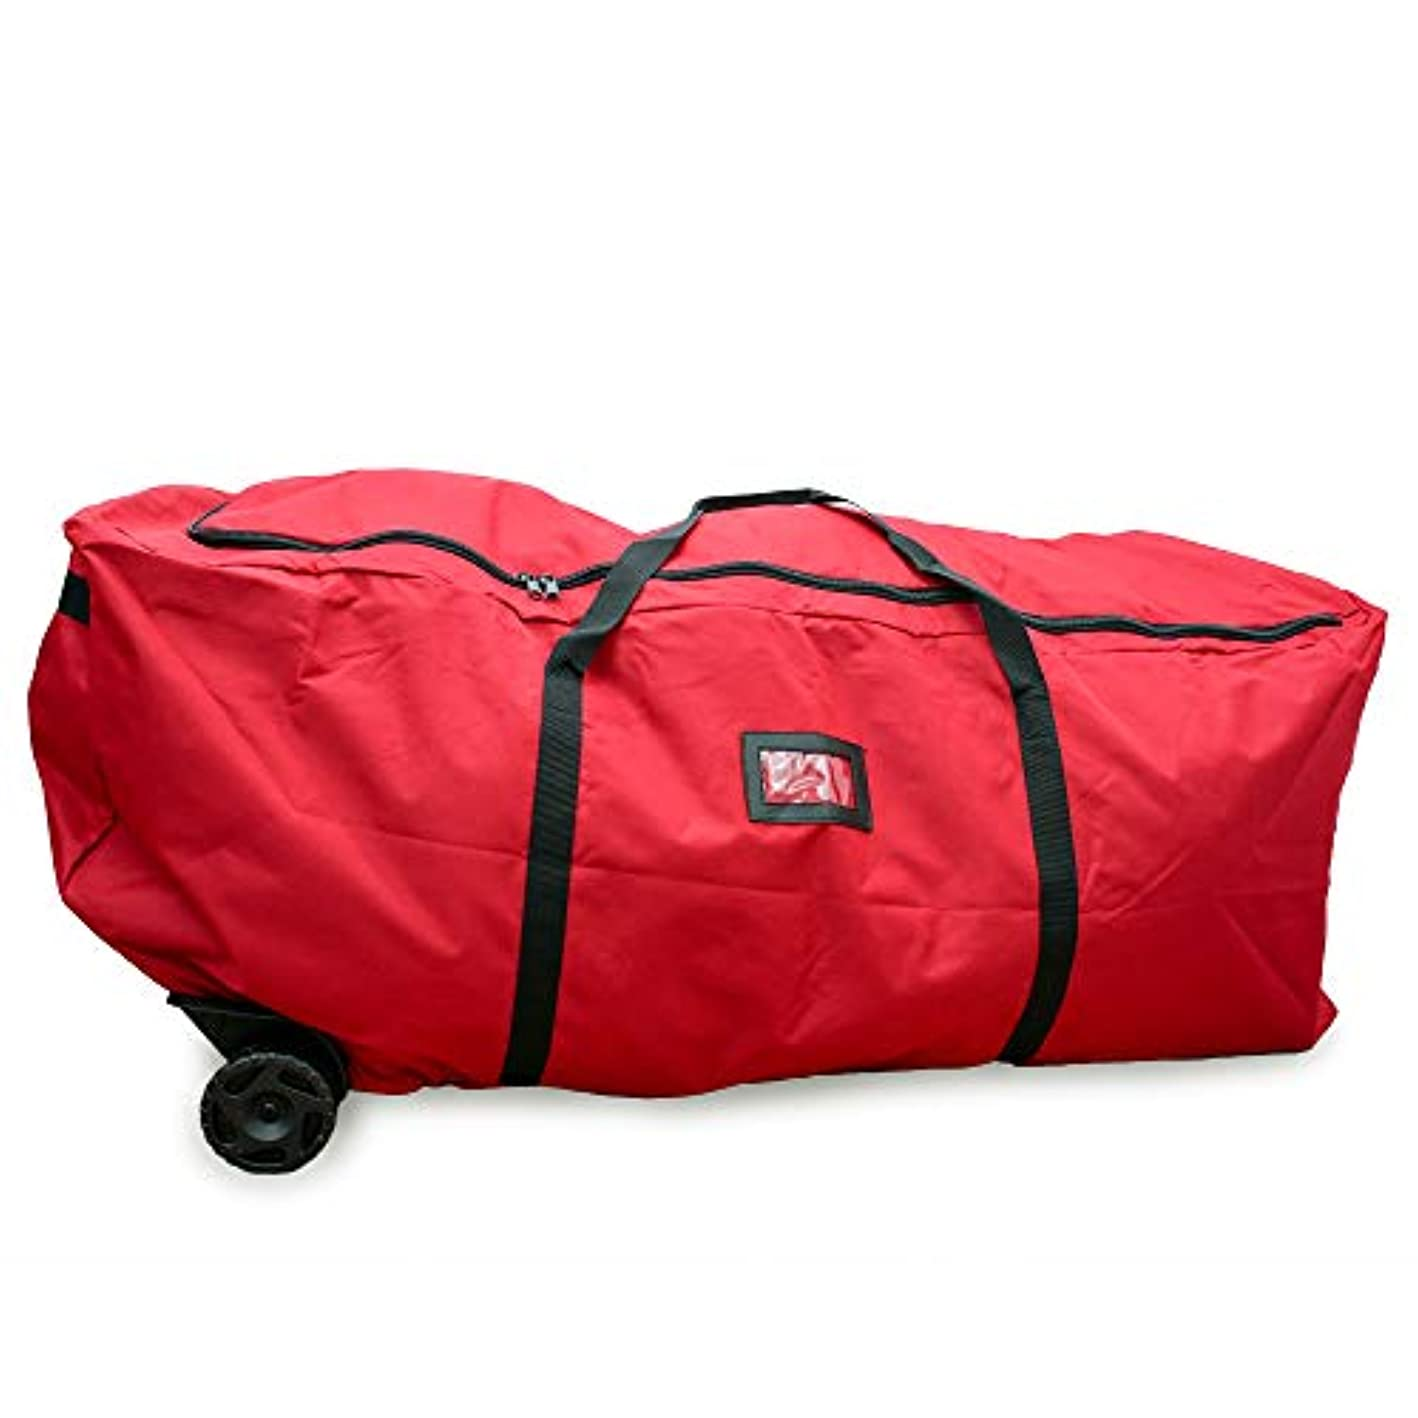 Quick & Carry - Super Large Rolling Christmas Tree Storage Duffel Bag, w/Premium Stitching, Rip-Stop for Rugged Durability, Super Easy Rolling Wheels, Fits up to 9ft Artificial Tree (Large Rolling)